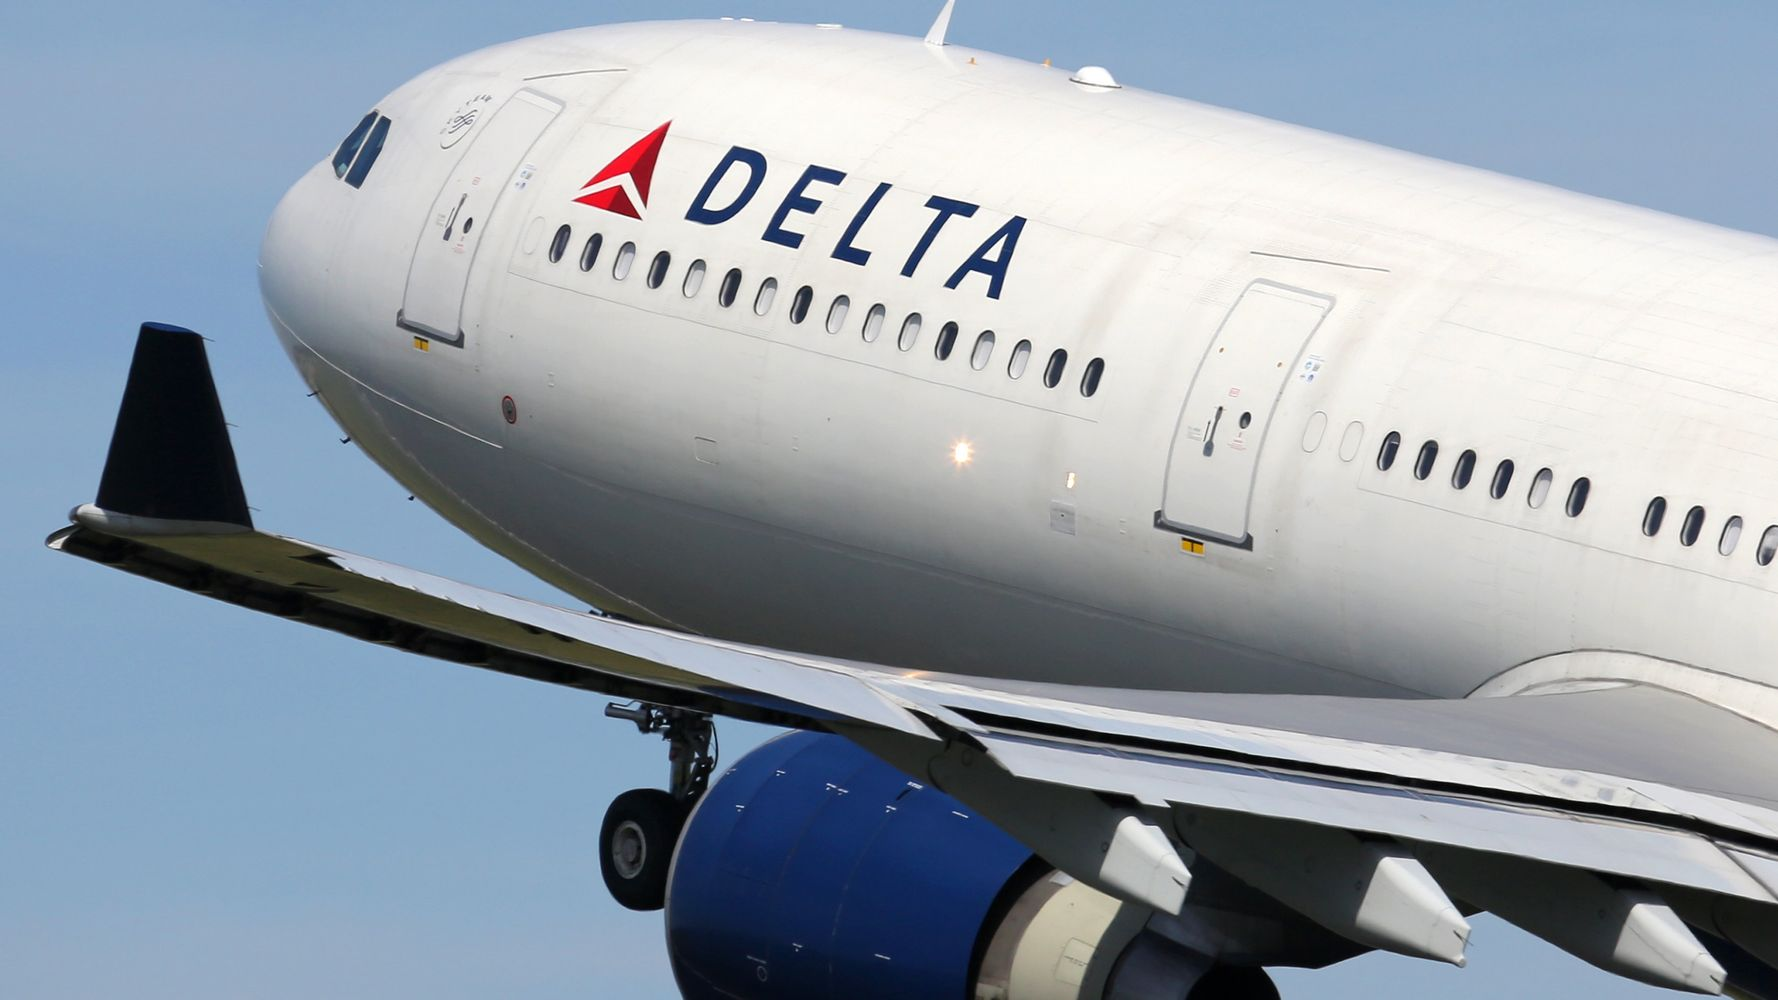 Delta Fined $50,000 For Booting 3 Muslim Passengers From Flights